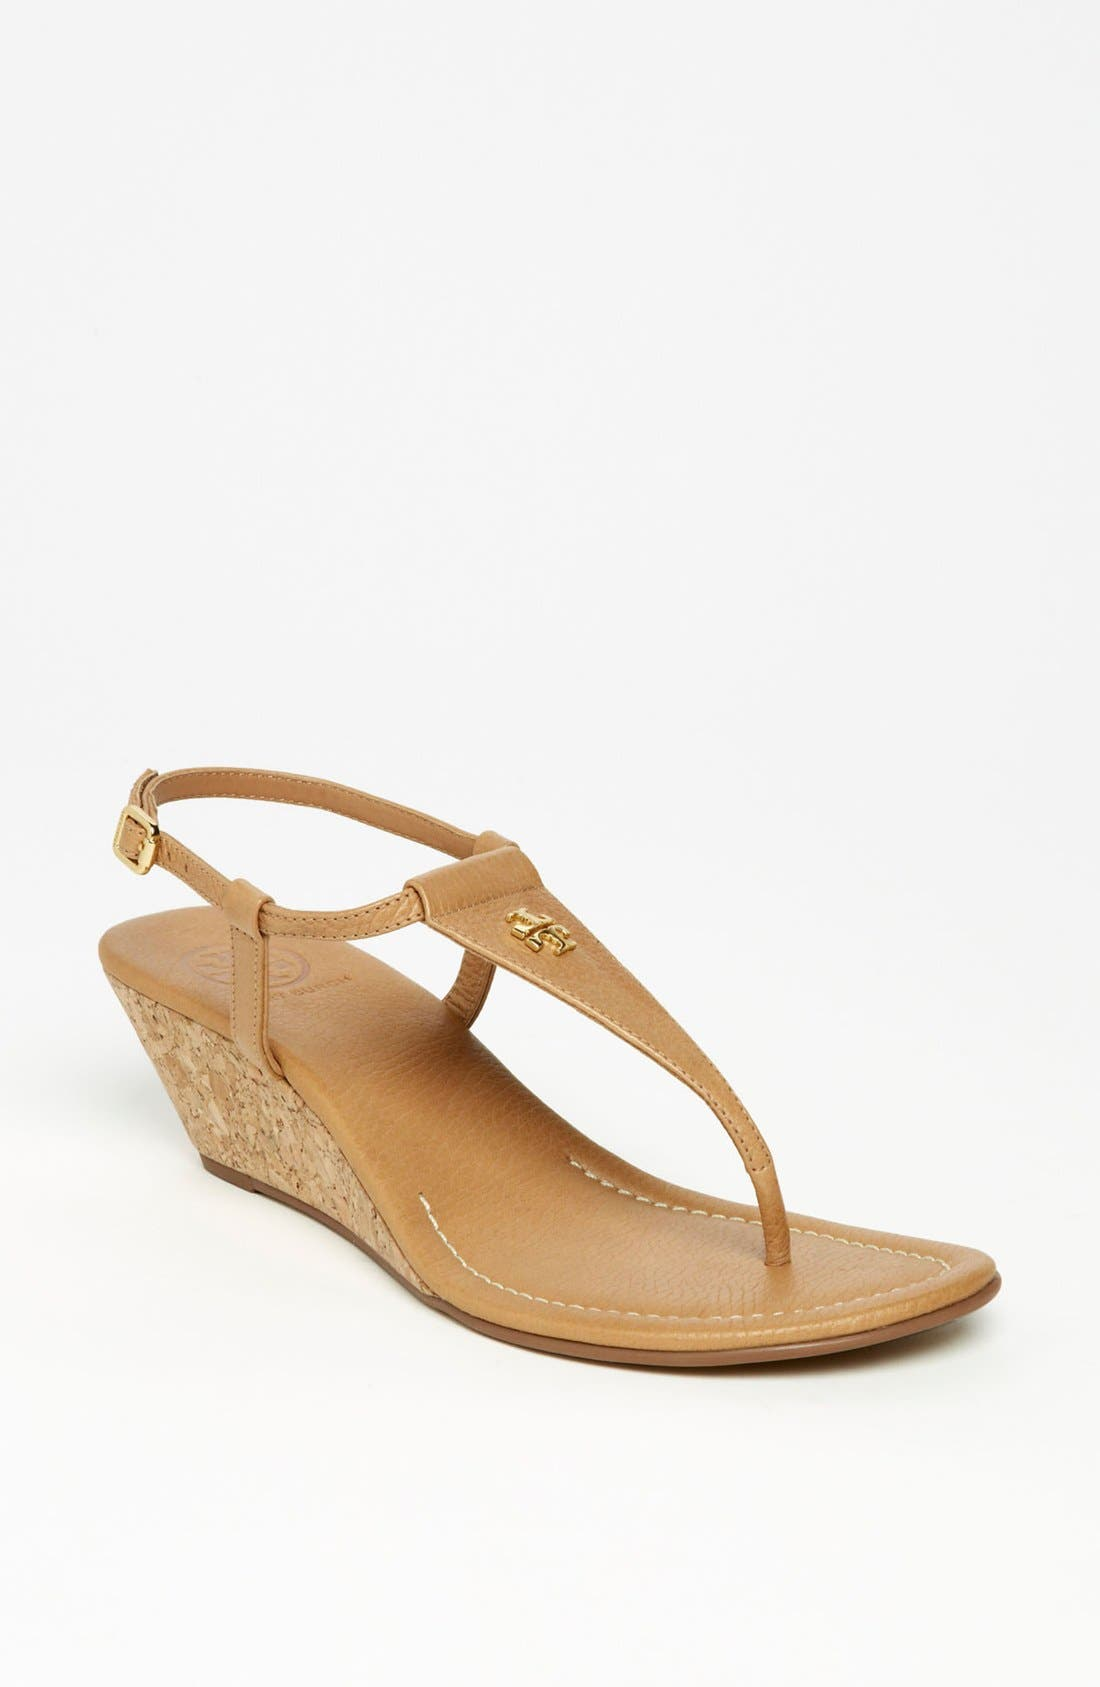 Alternate Image 1 Selected - Tory Burch 'Britton' Wedge Sandal